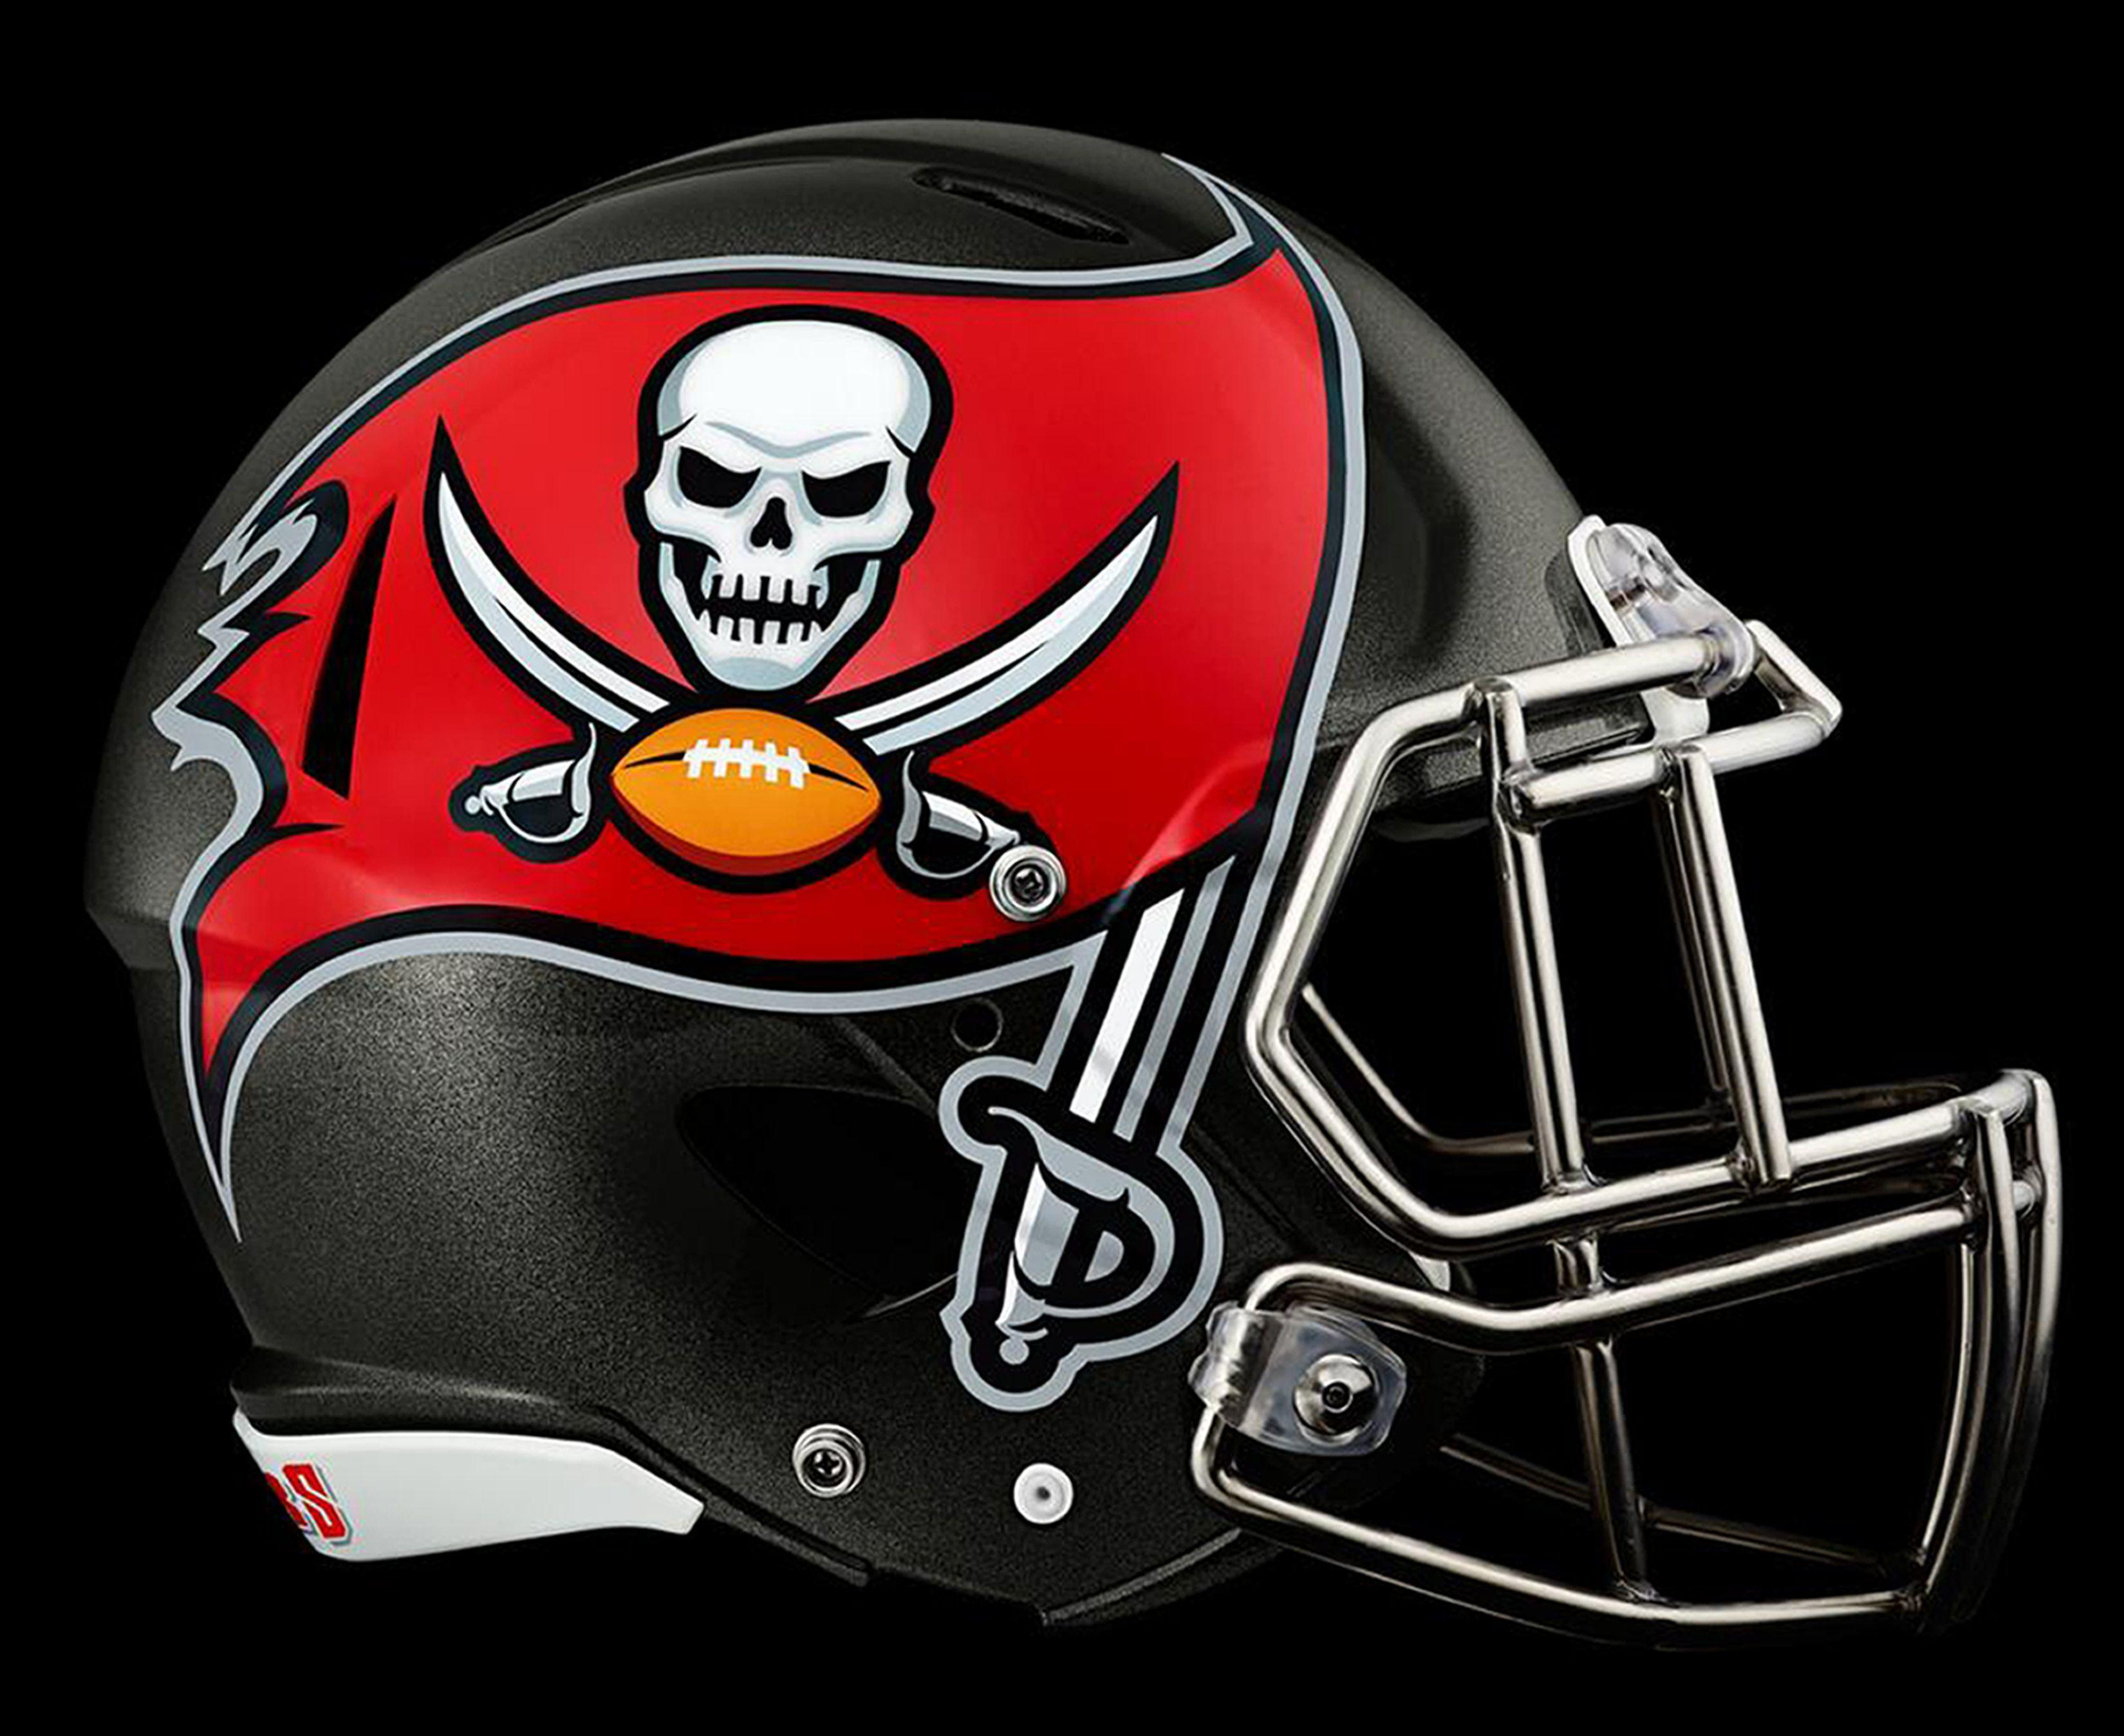 Buccaneers Wallpapers HD | PixelsTalk.Net